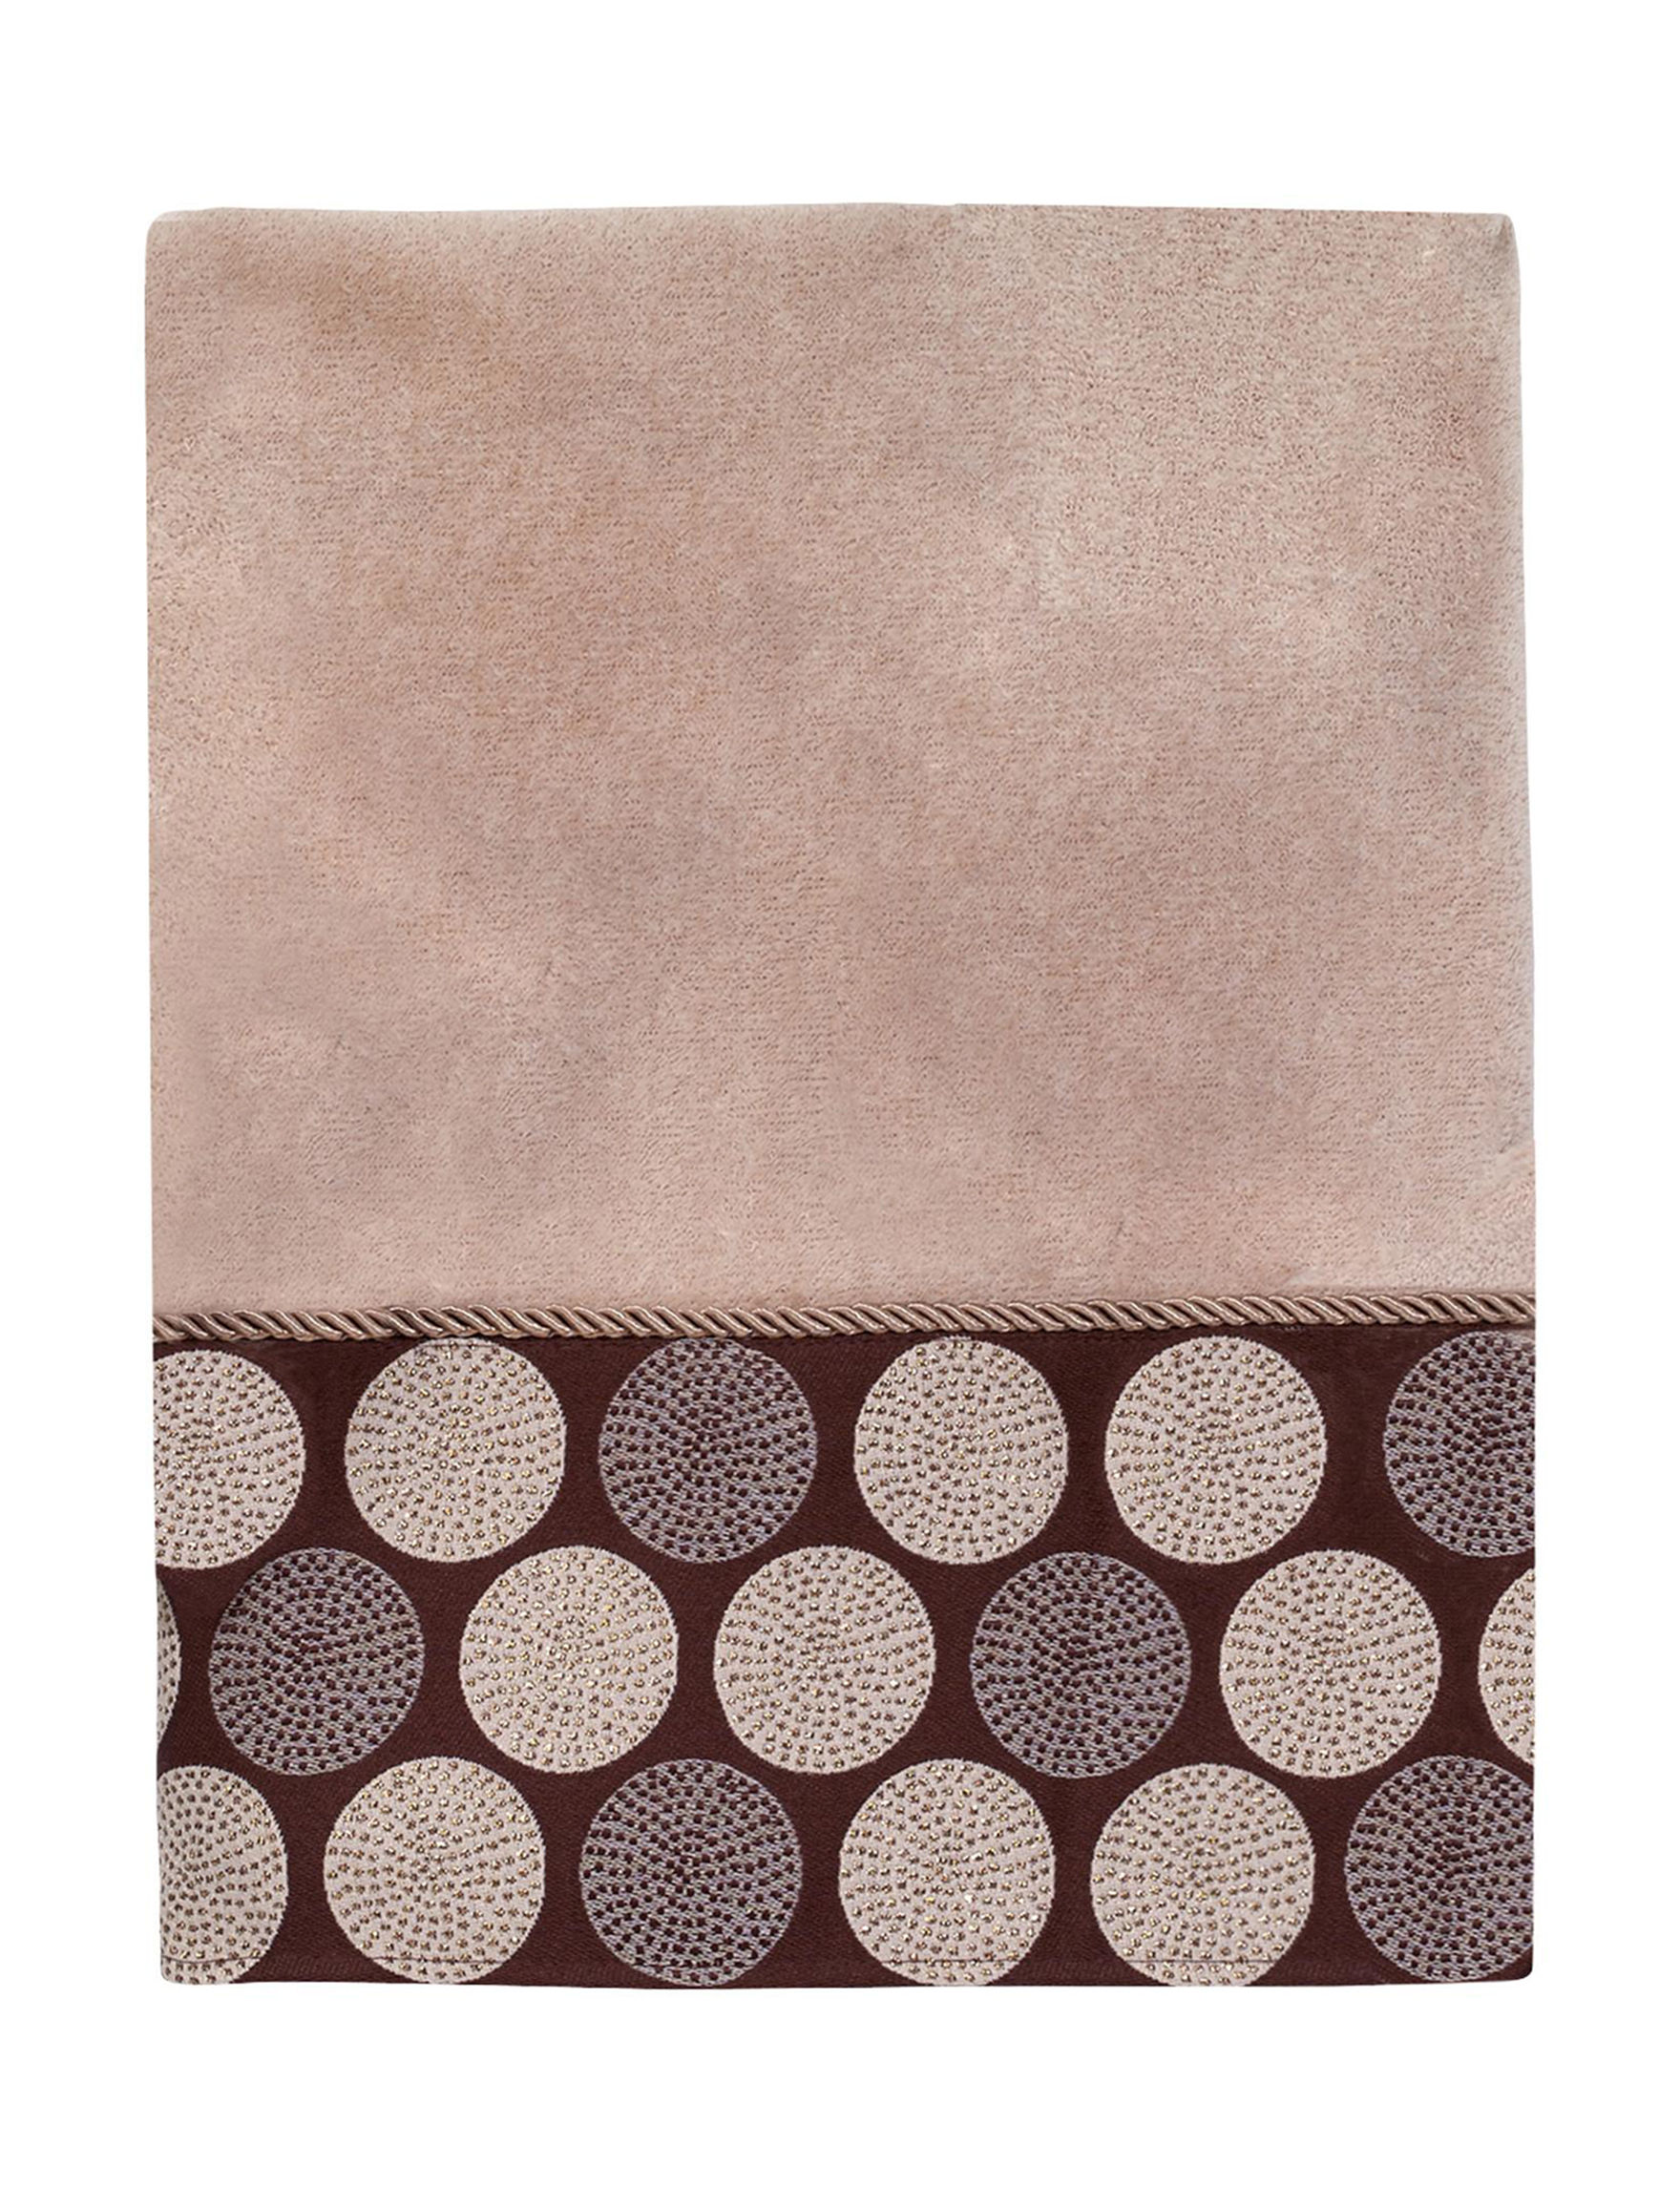 Avanti  Bath Towels Towels